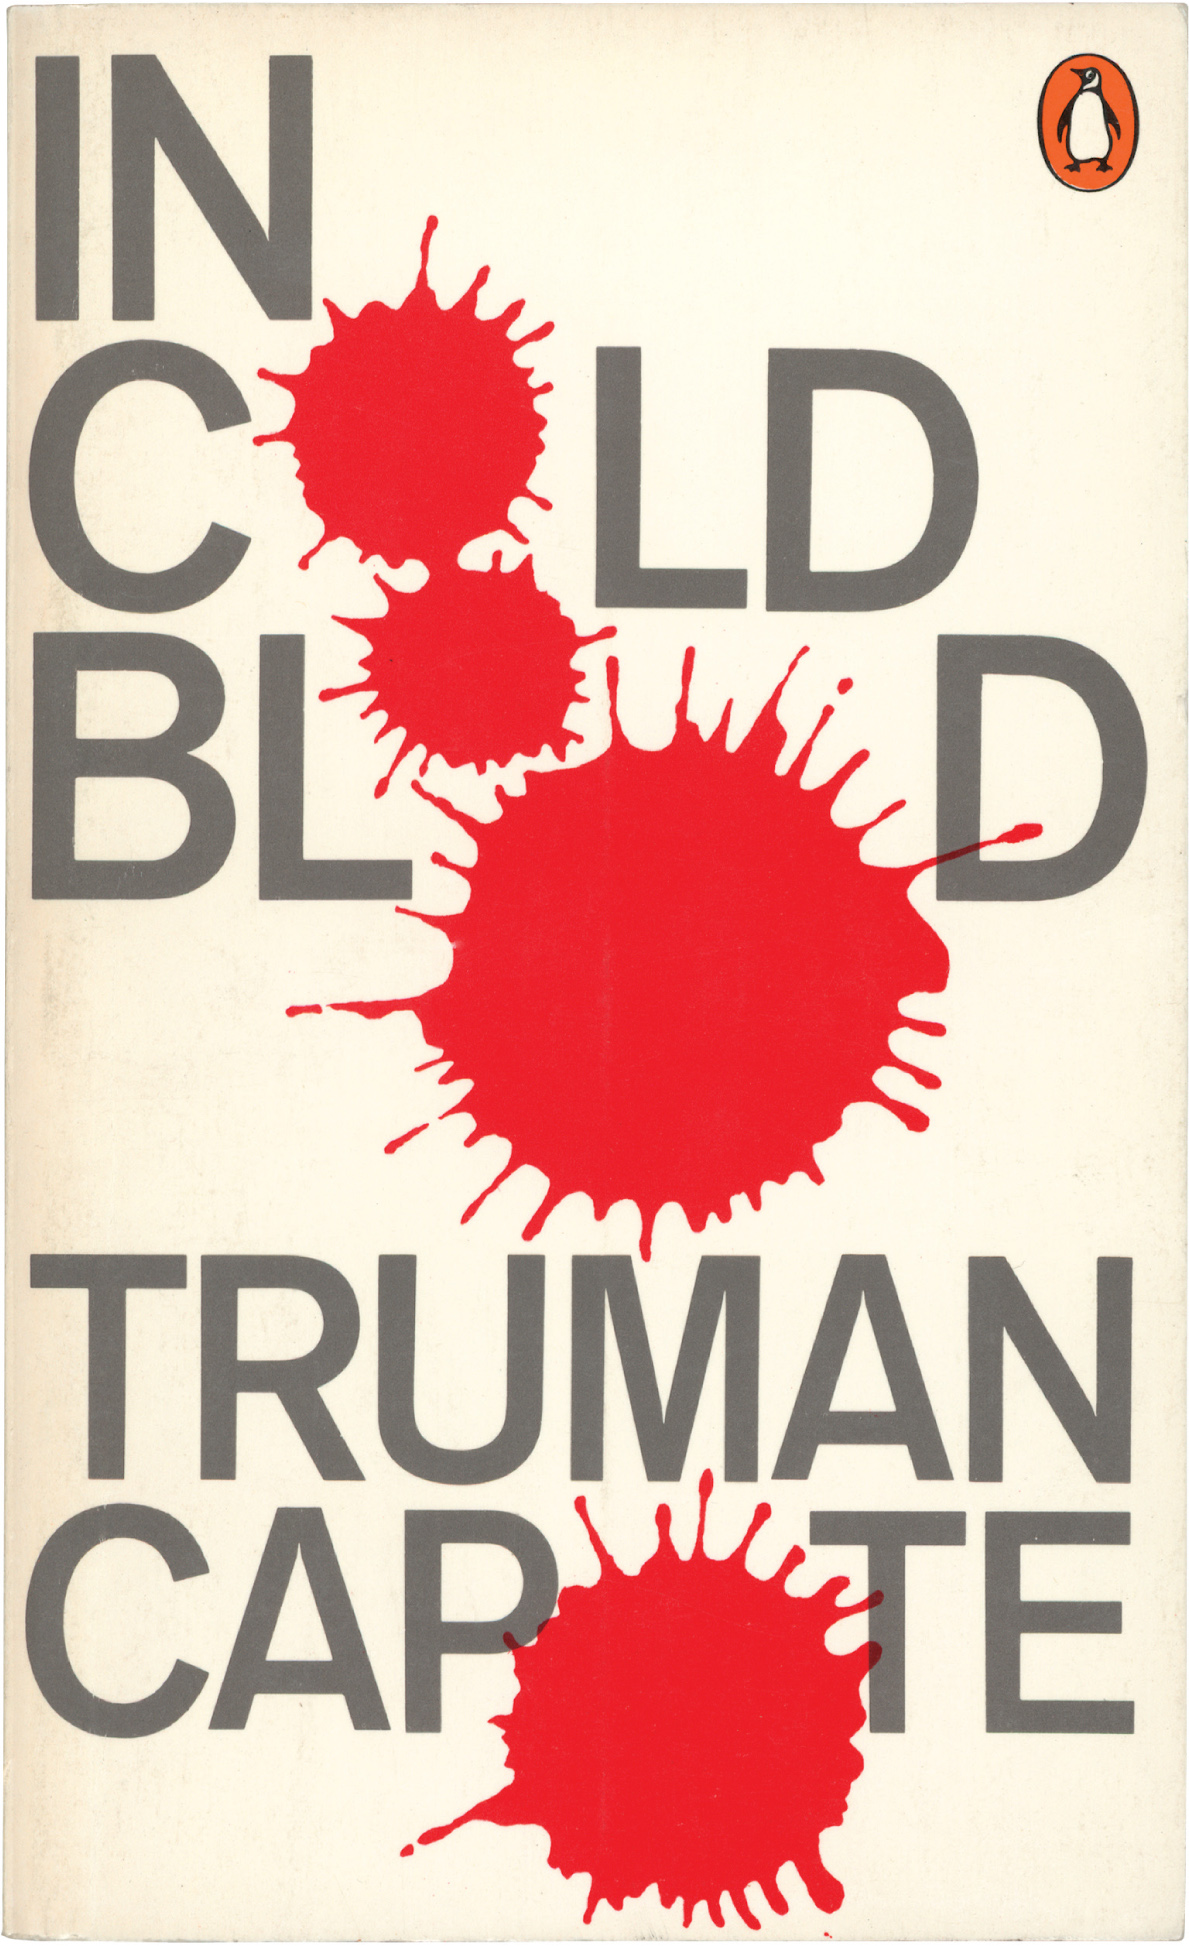 a summary of in cold blood by truman capote In cold blood heron classics - brown/gilt edition by truman capote and a great selection of similar used, new and collectible books available now at abebookscom.